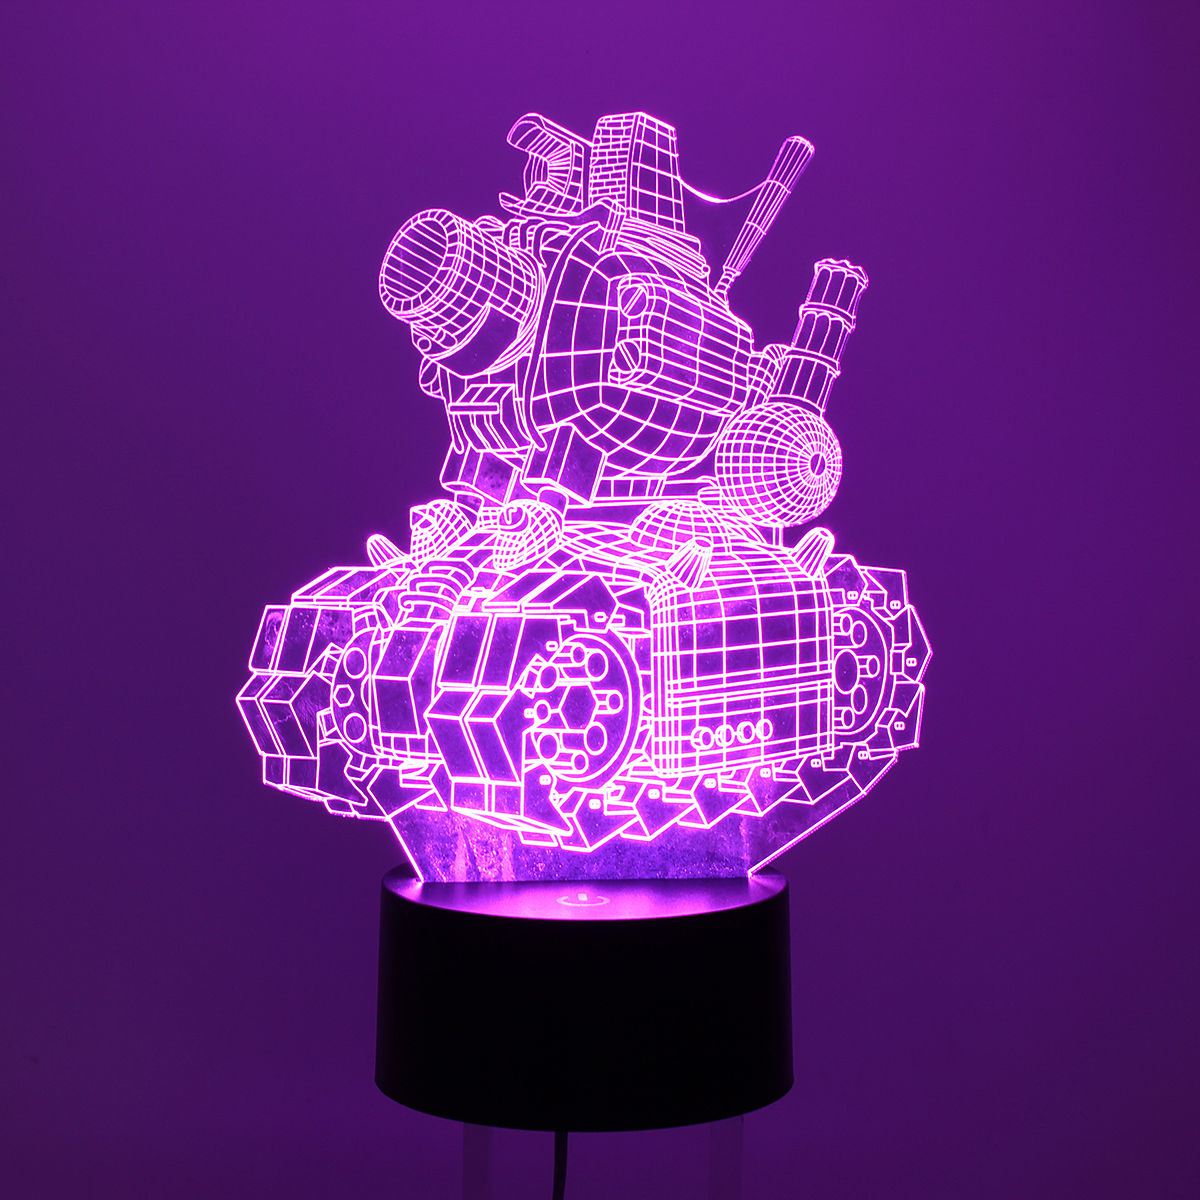 Model Tank 3D Visual Night Lights 7 Color Change LED Touch Switch USB Table Lamp Light